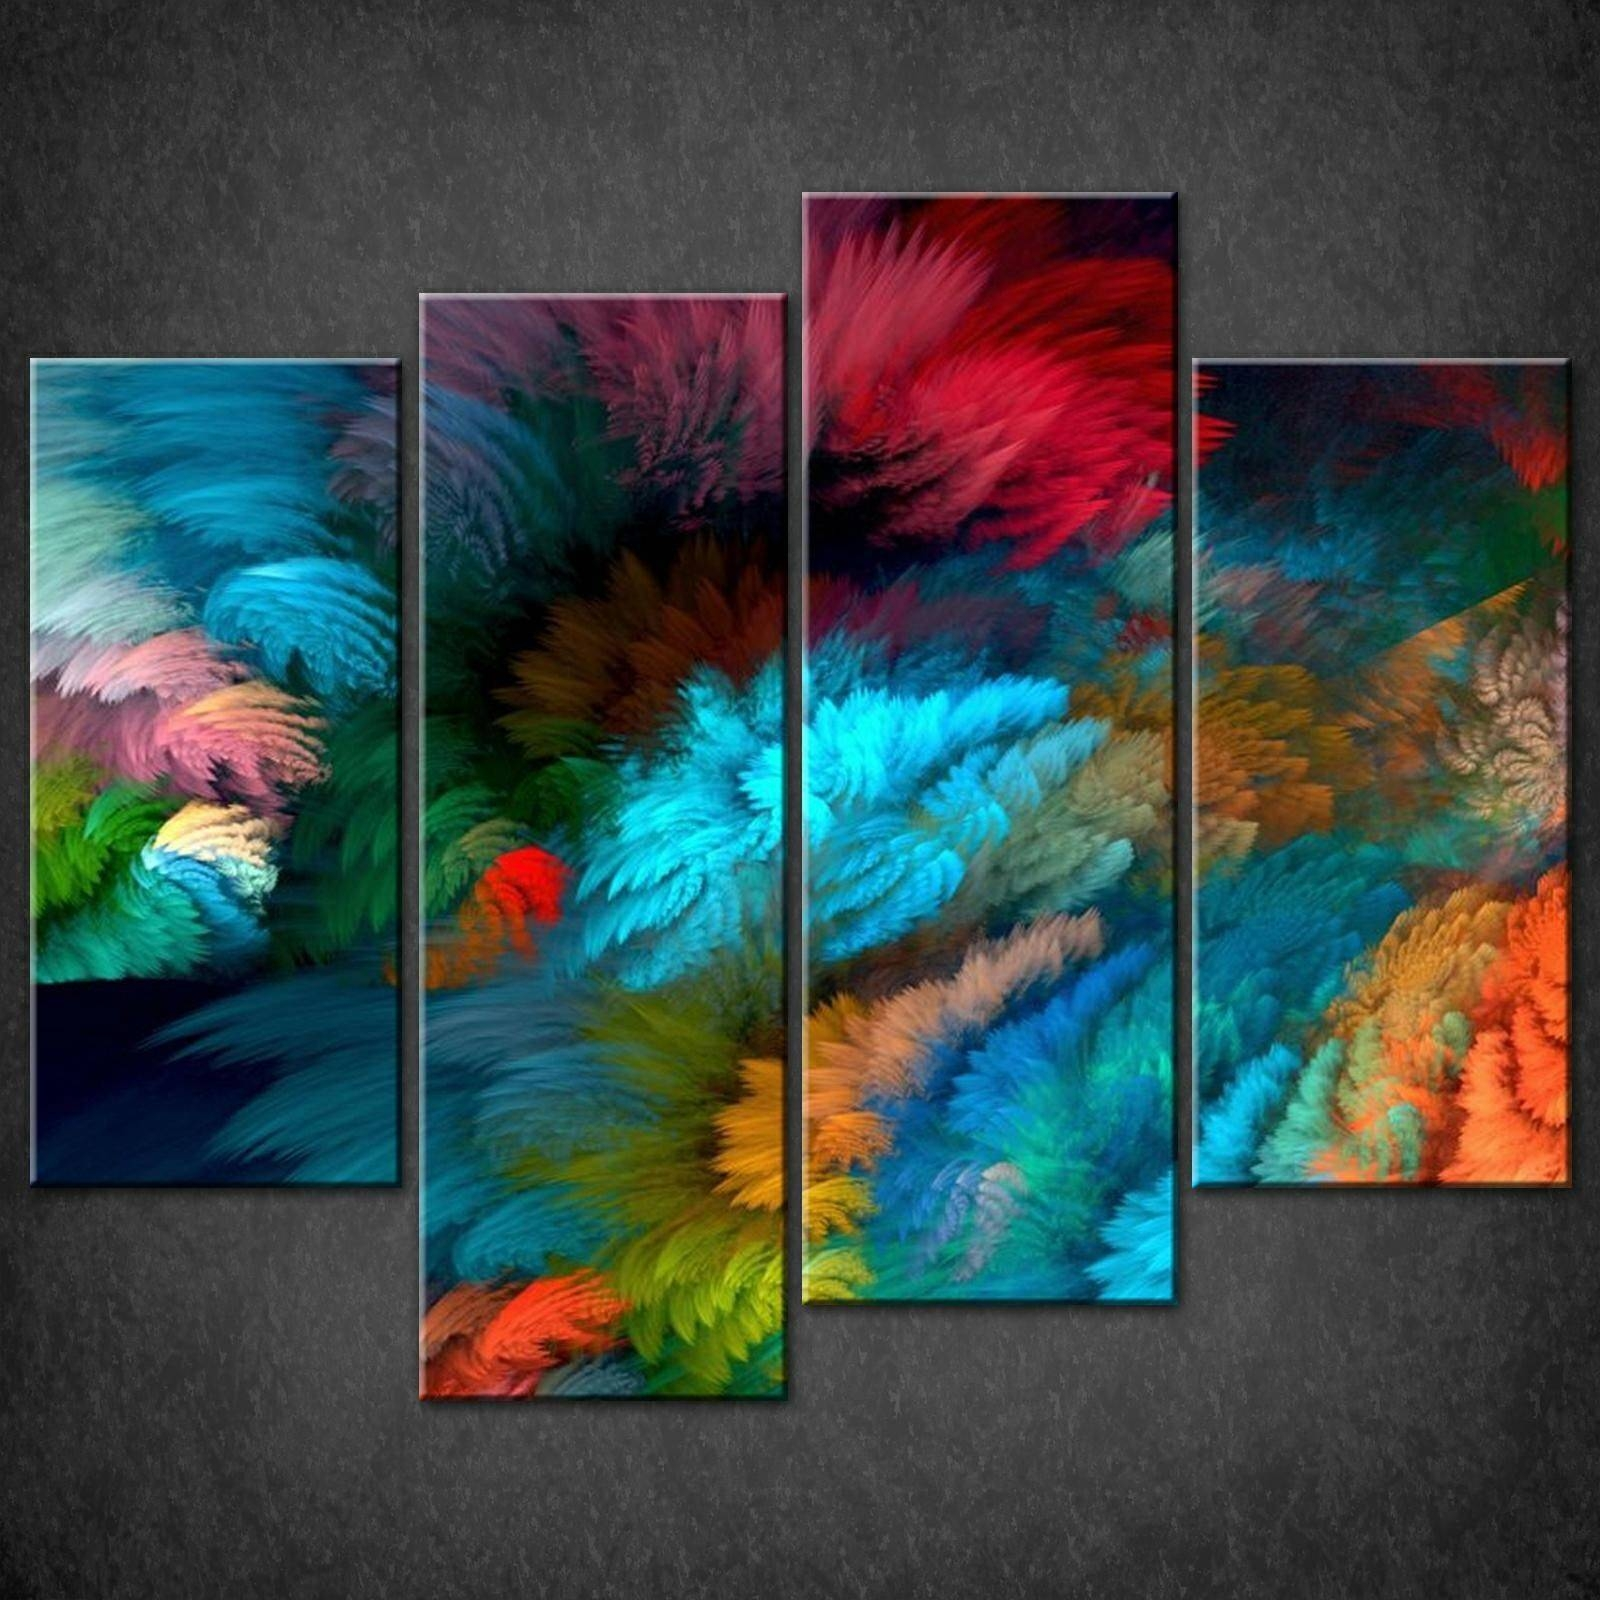 Decor: Large Abstract Colourful Split Canvas Wall Art Pictures Prints Regarding Most Up To Date Split Wall Art (View 11 of 20)